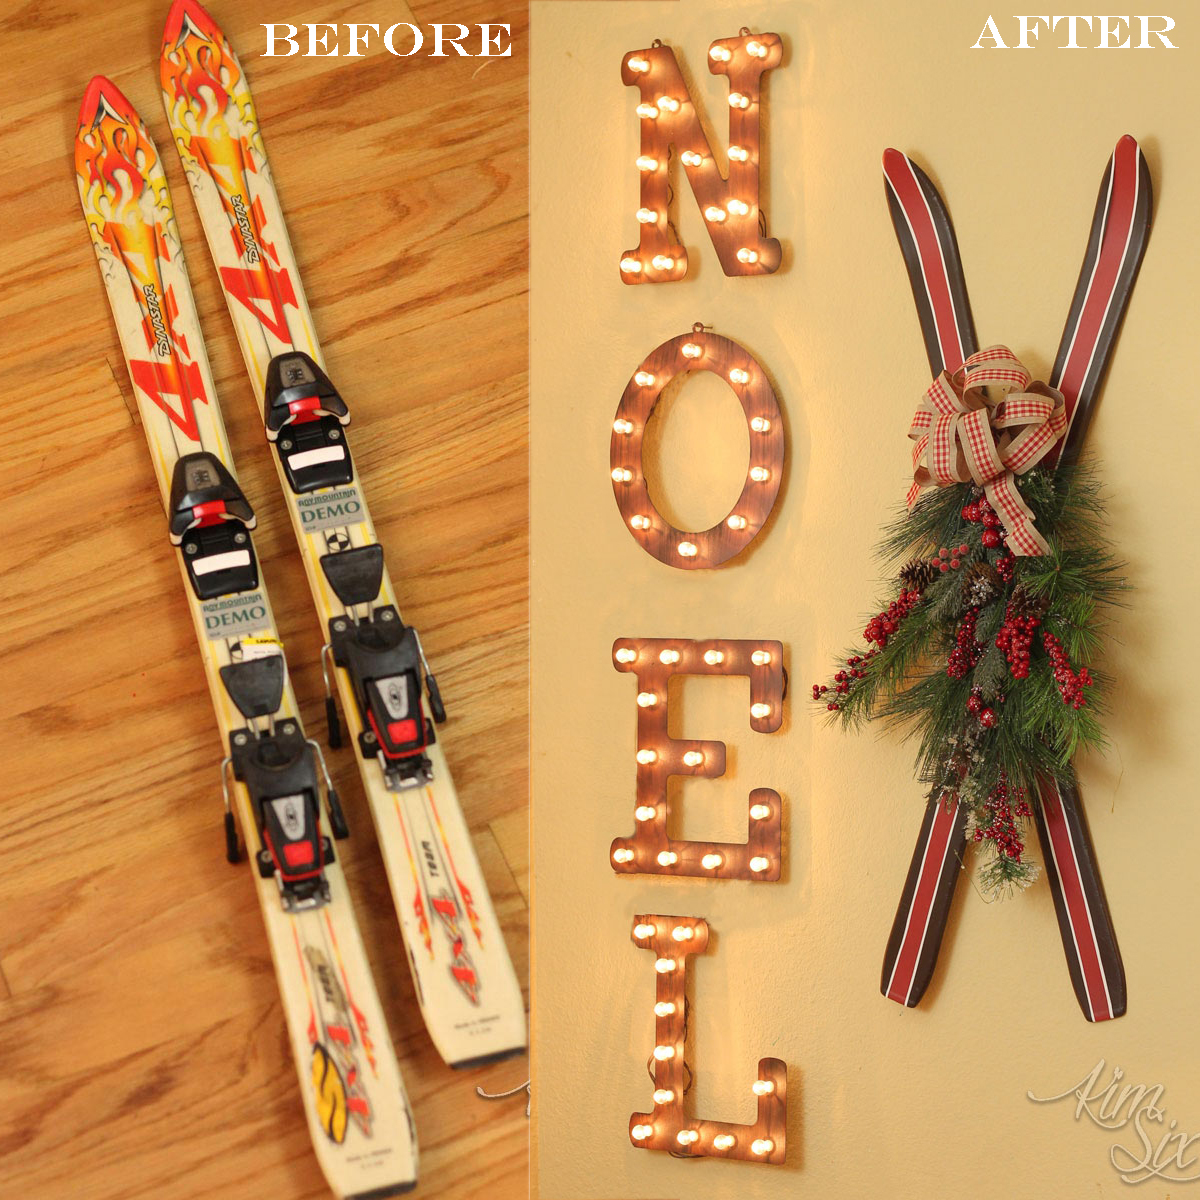 Painted Thrift Store Ski Makeover - The Kim Six Fix